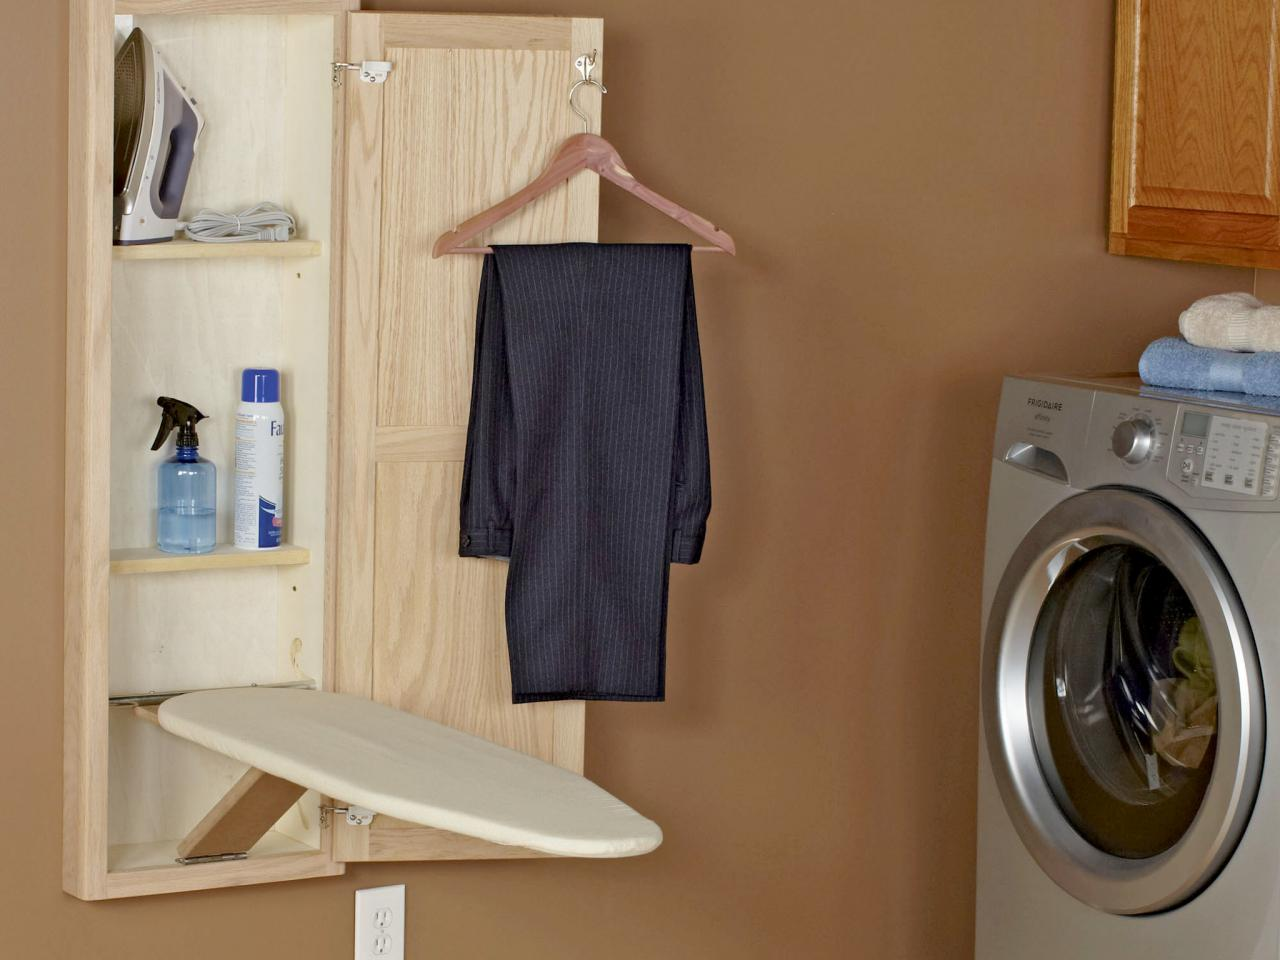 how to put up an ironing board